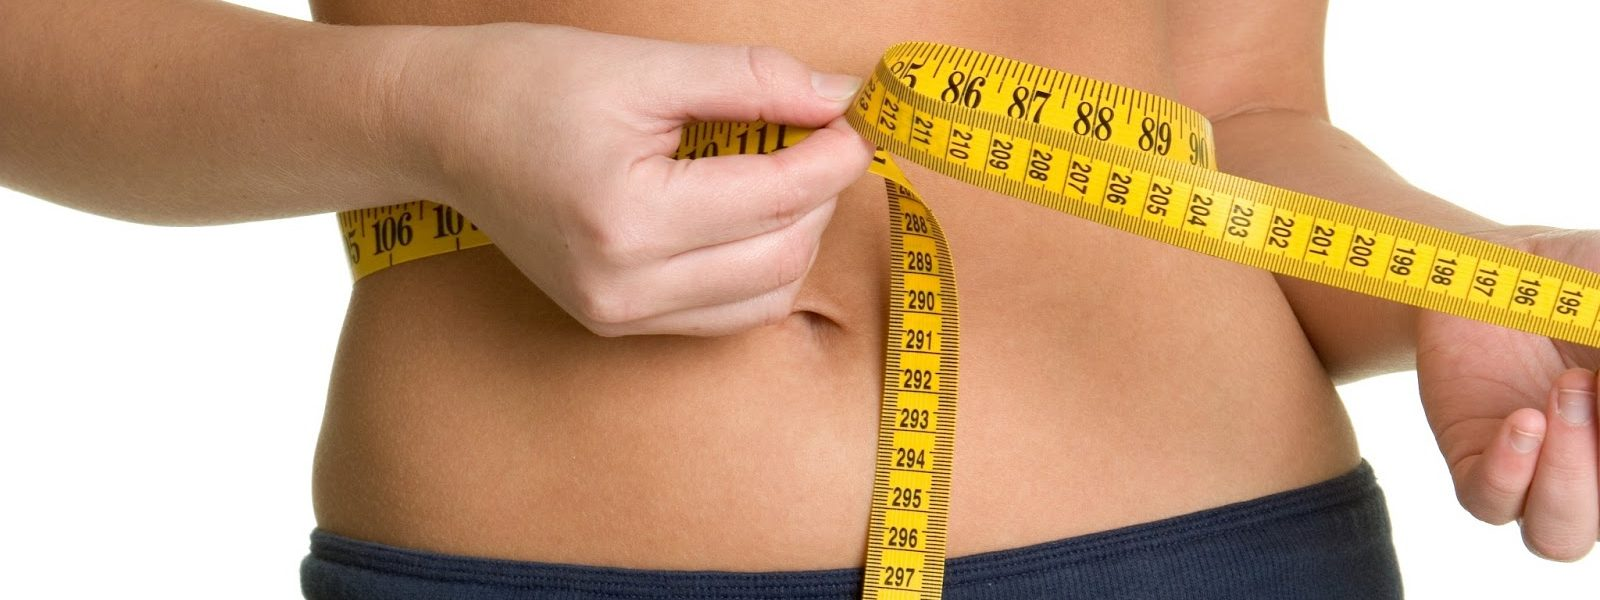 Medical Weight Loss Clinics Embrace New Technologies